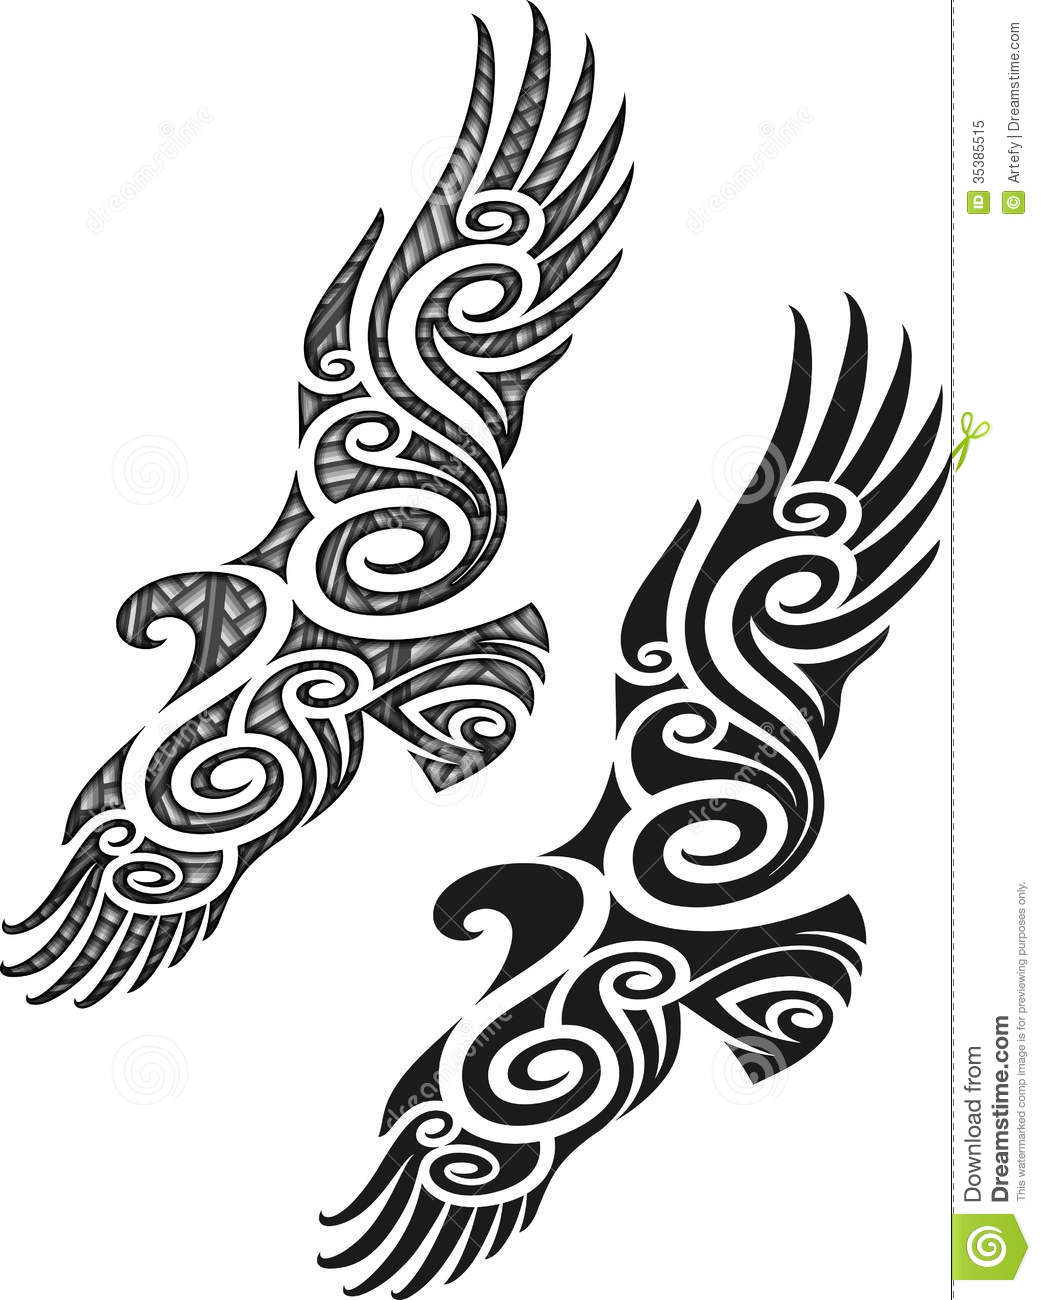 Maori Tattoo Pattern - Eagle Royalty Free Stock Photo - Image ...